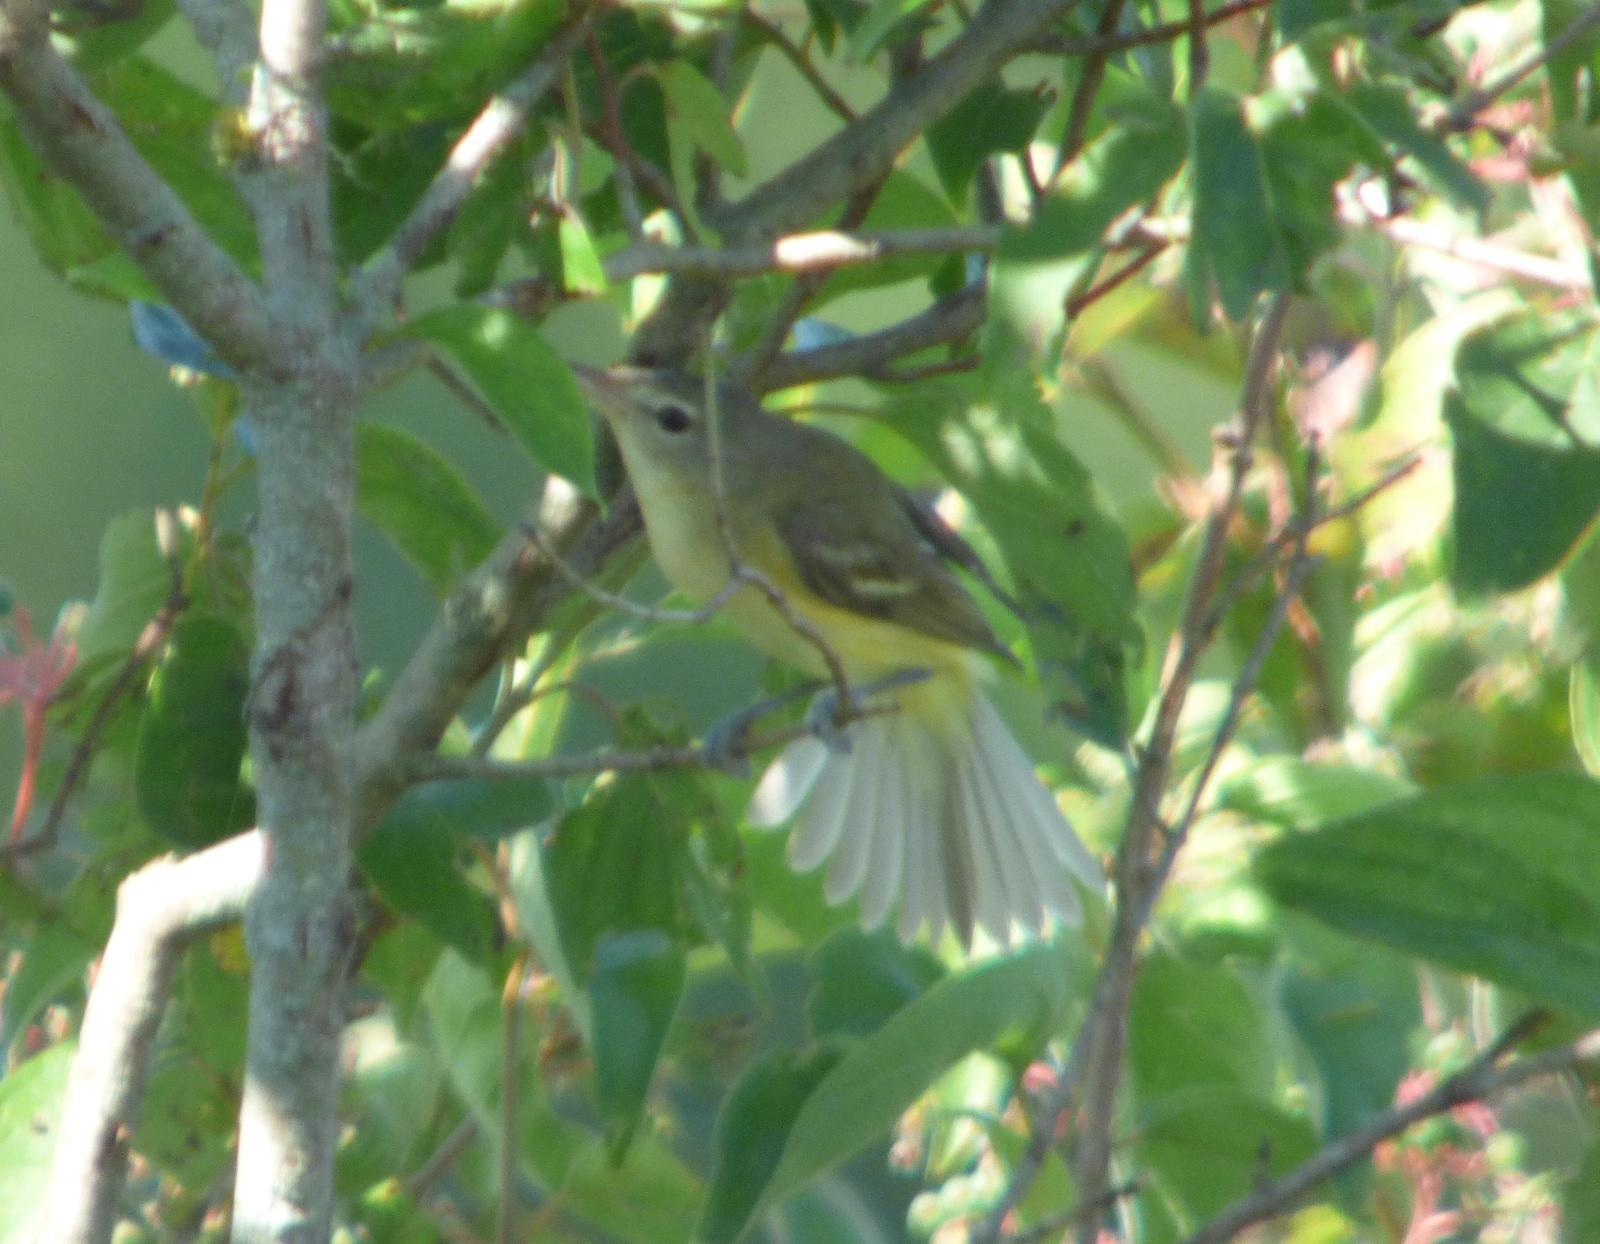 Bell's Vireo Photo by Phil Ryan